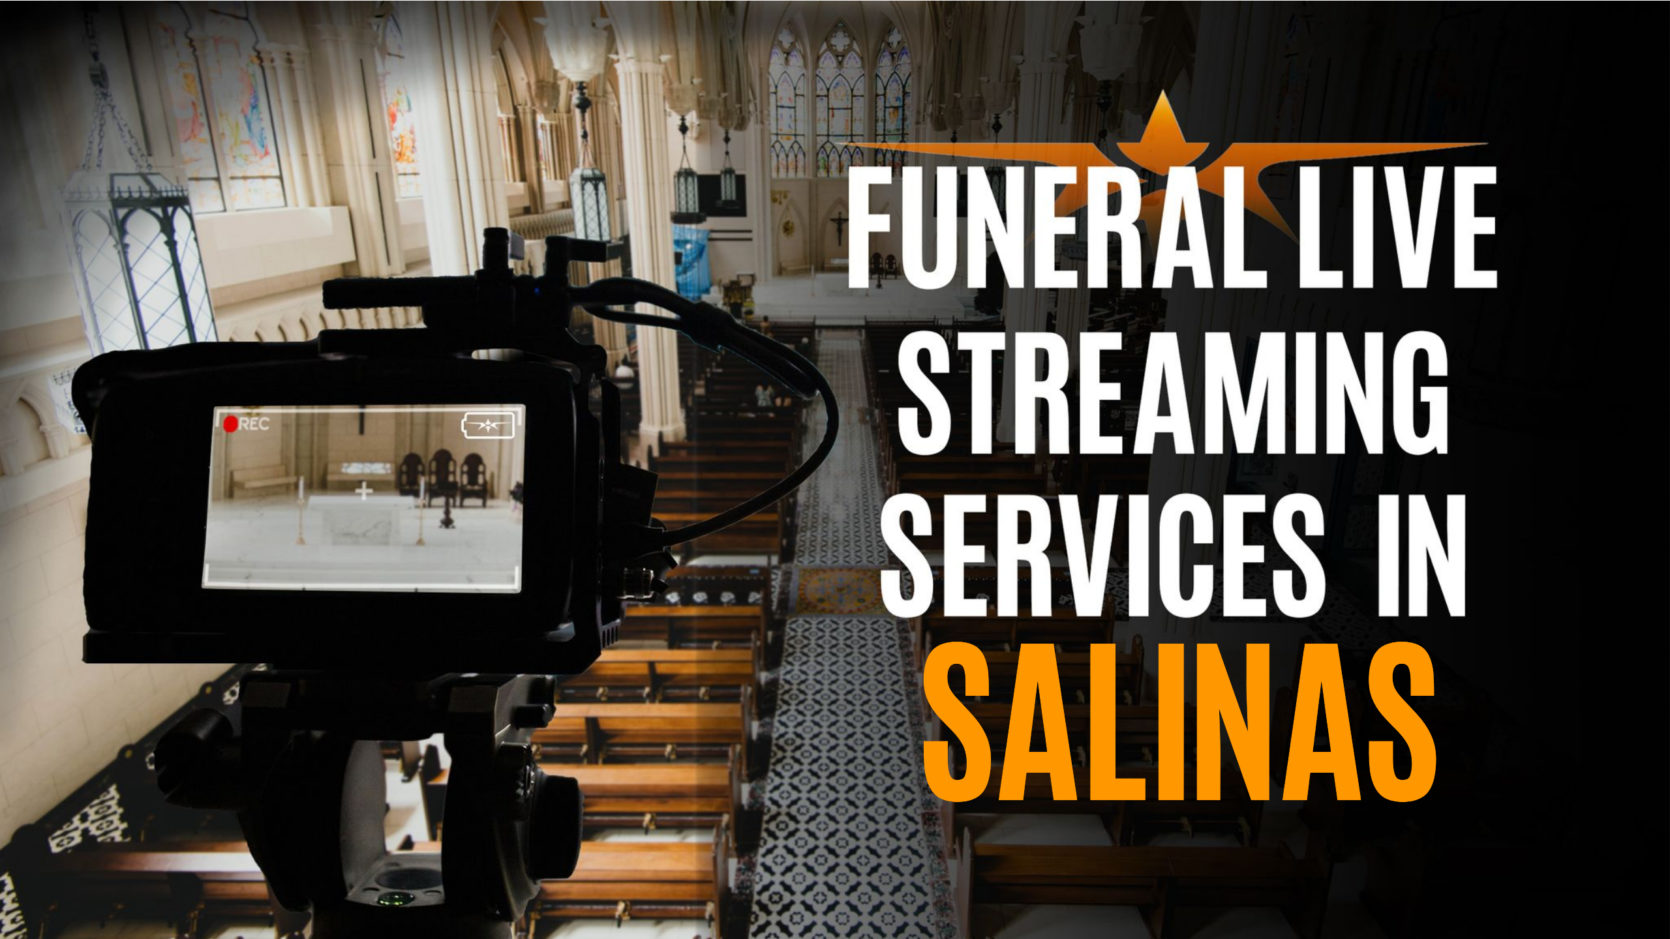 Funeral Live Streaming Services in Salinas